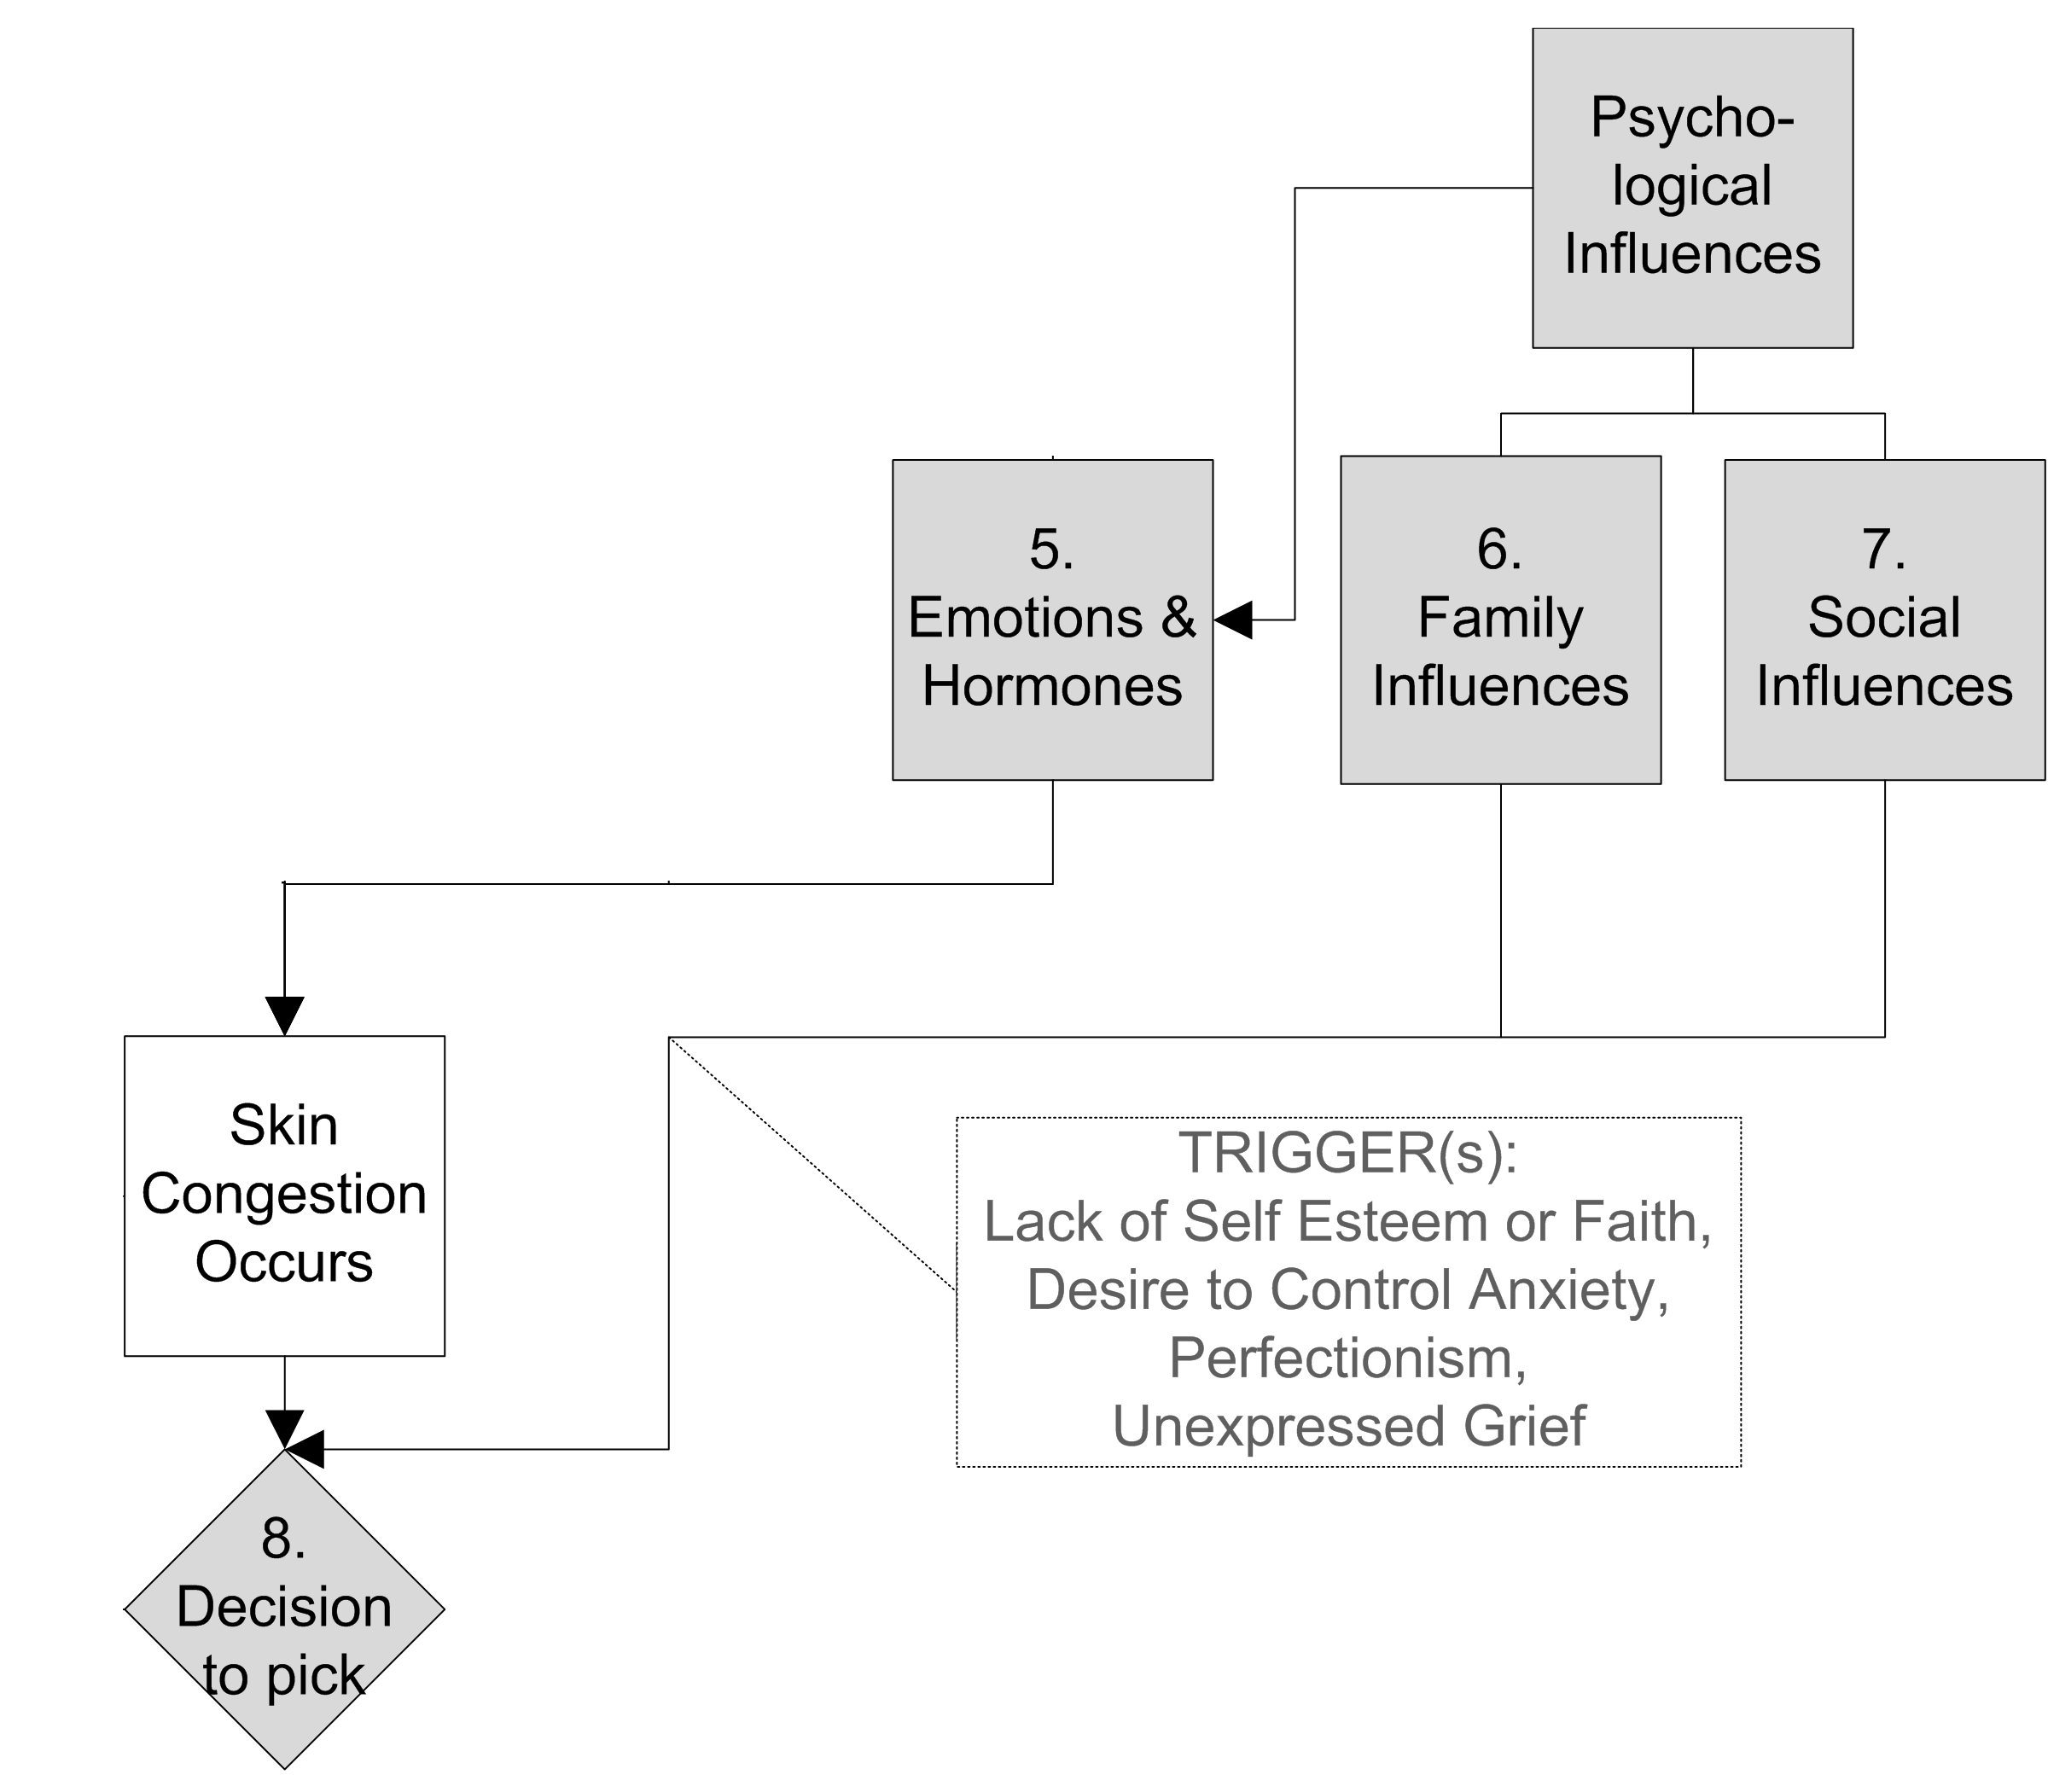 Excoriation Skin Picking Disorder Flow Chart - psych influences